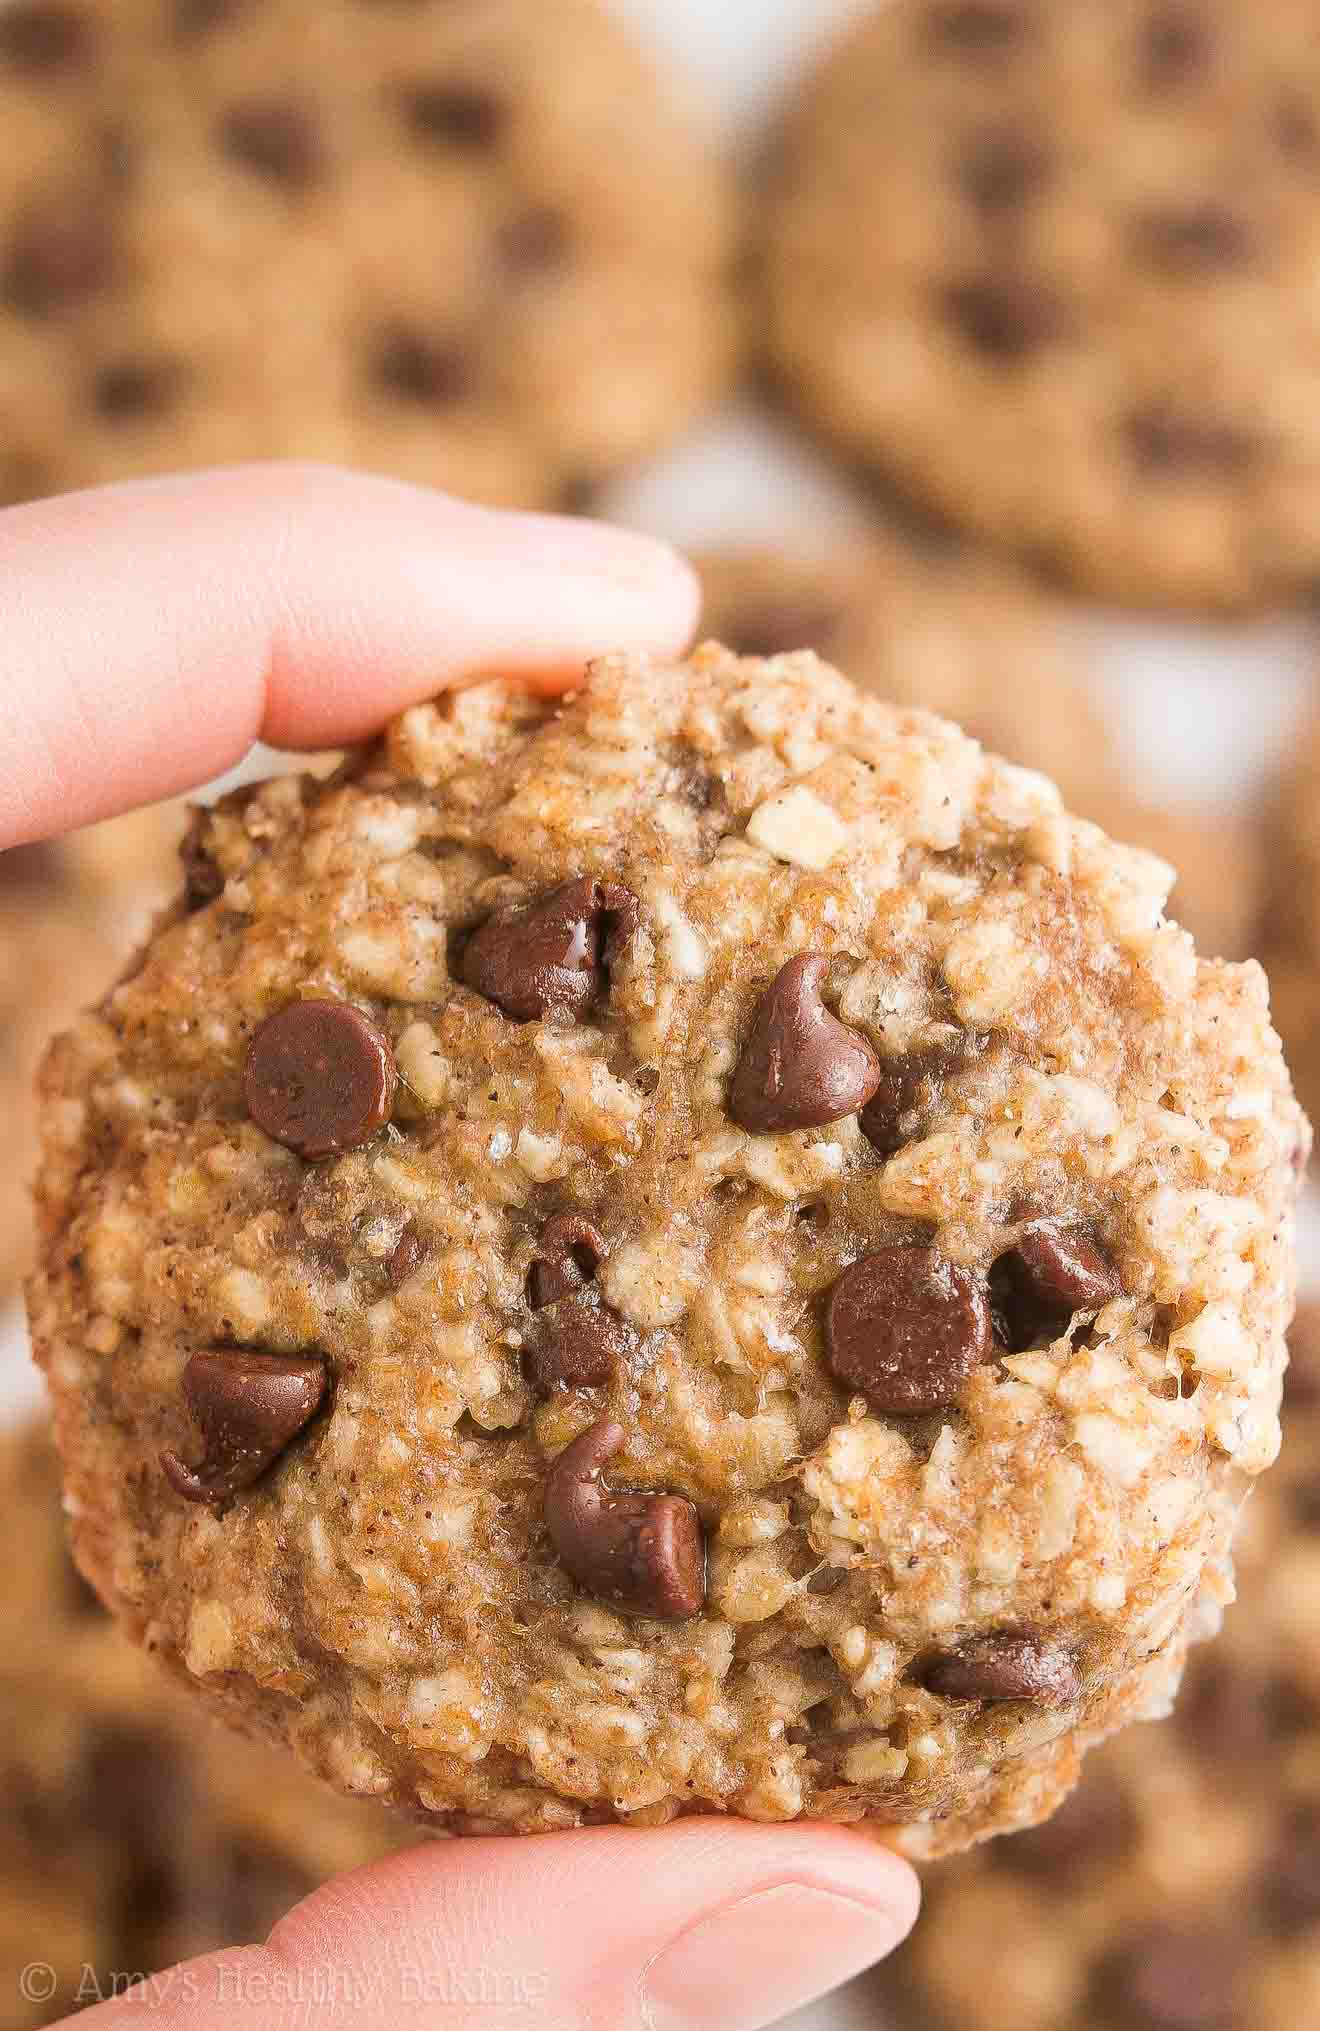 Oatmeal Chocolate Chip Cookies Healthy  Healthy Chocolate Chip Banana Oatmeal Breakfast Cookies